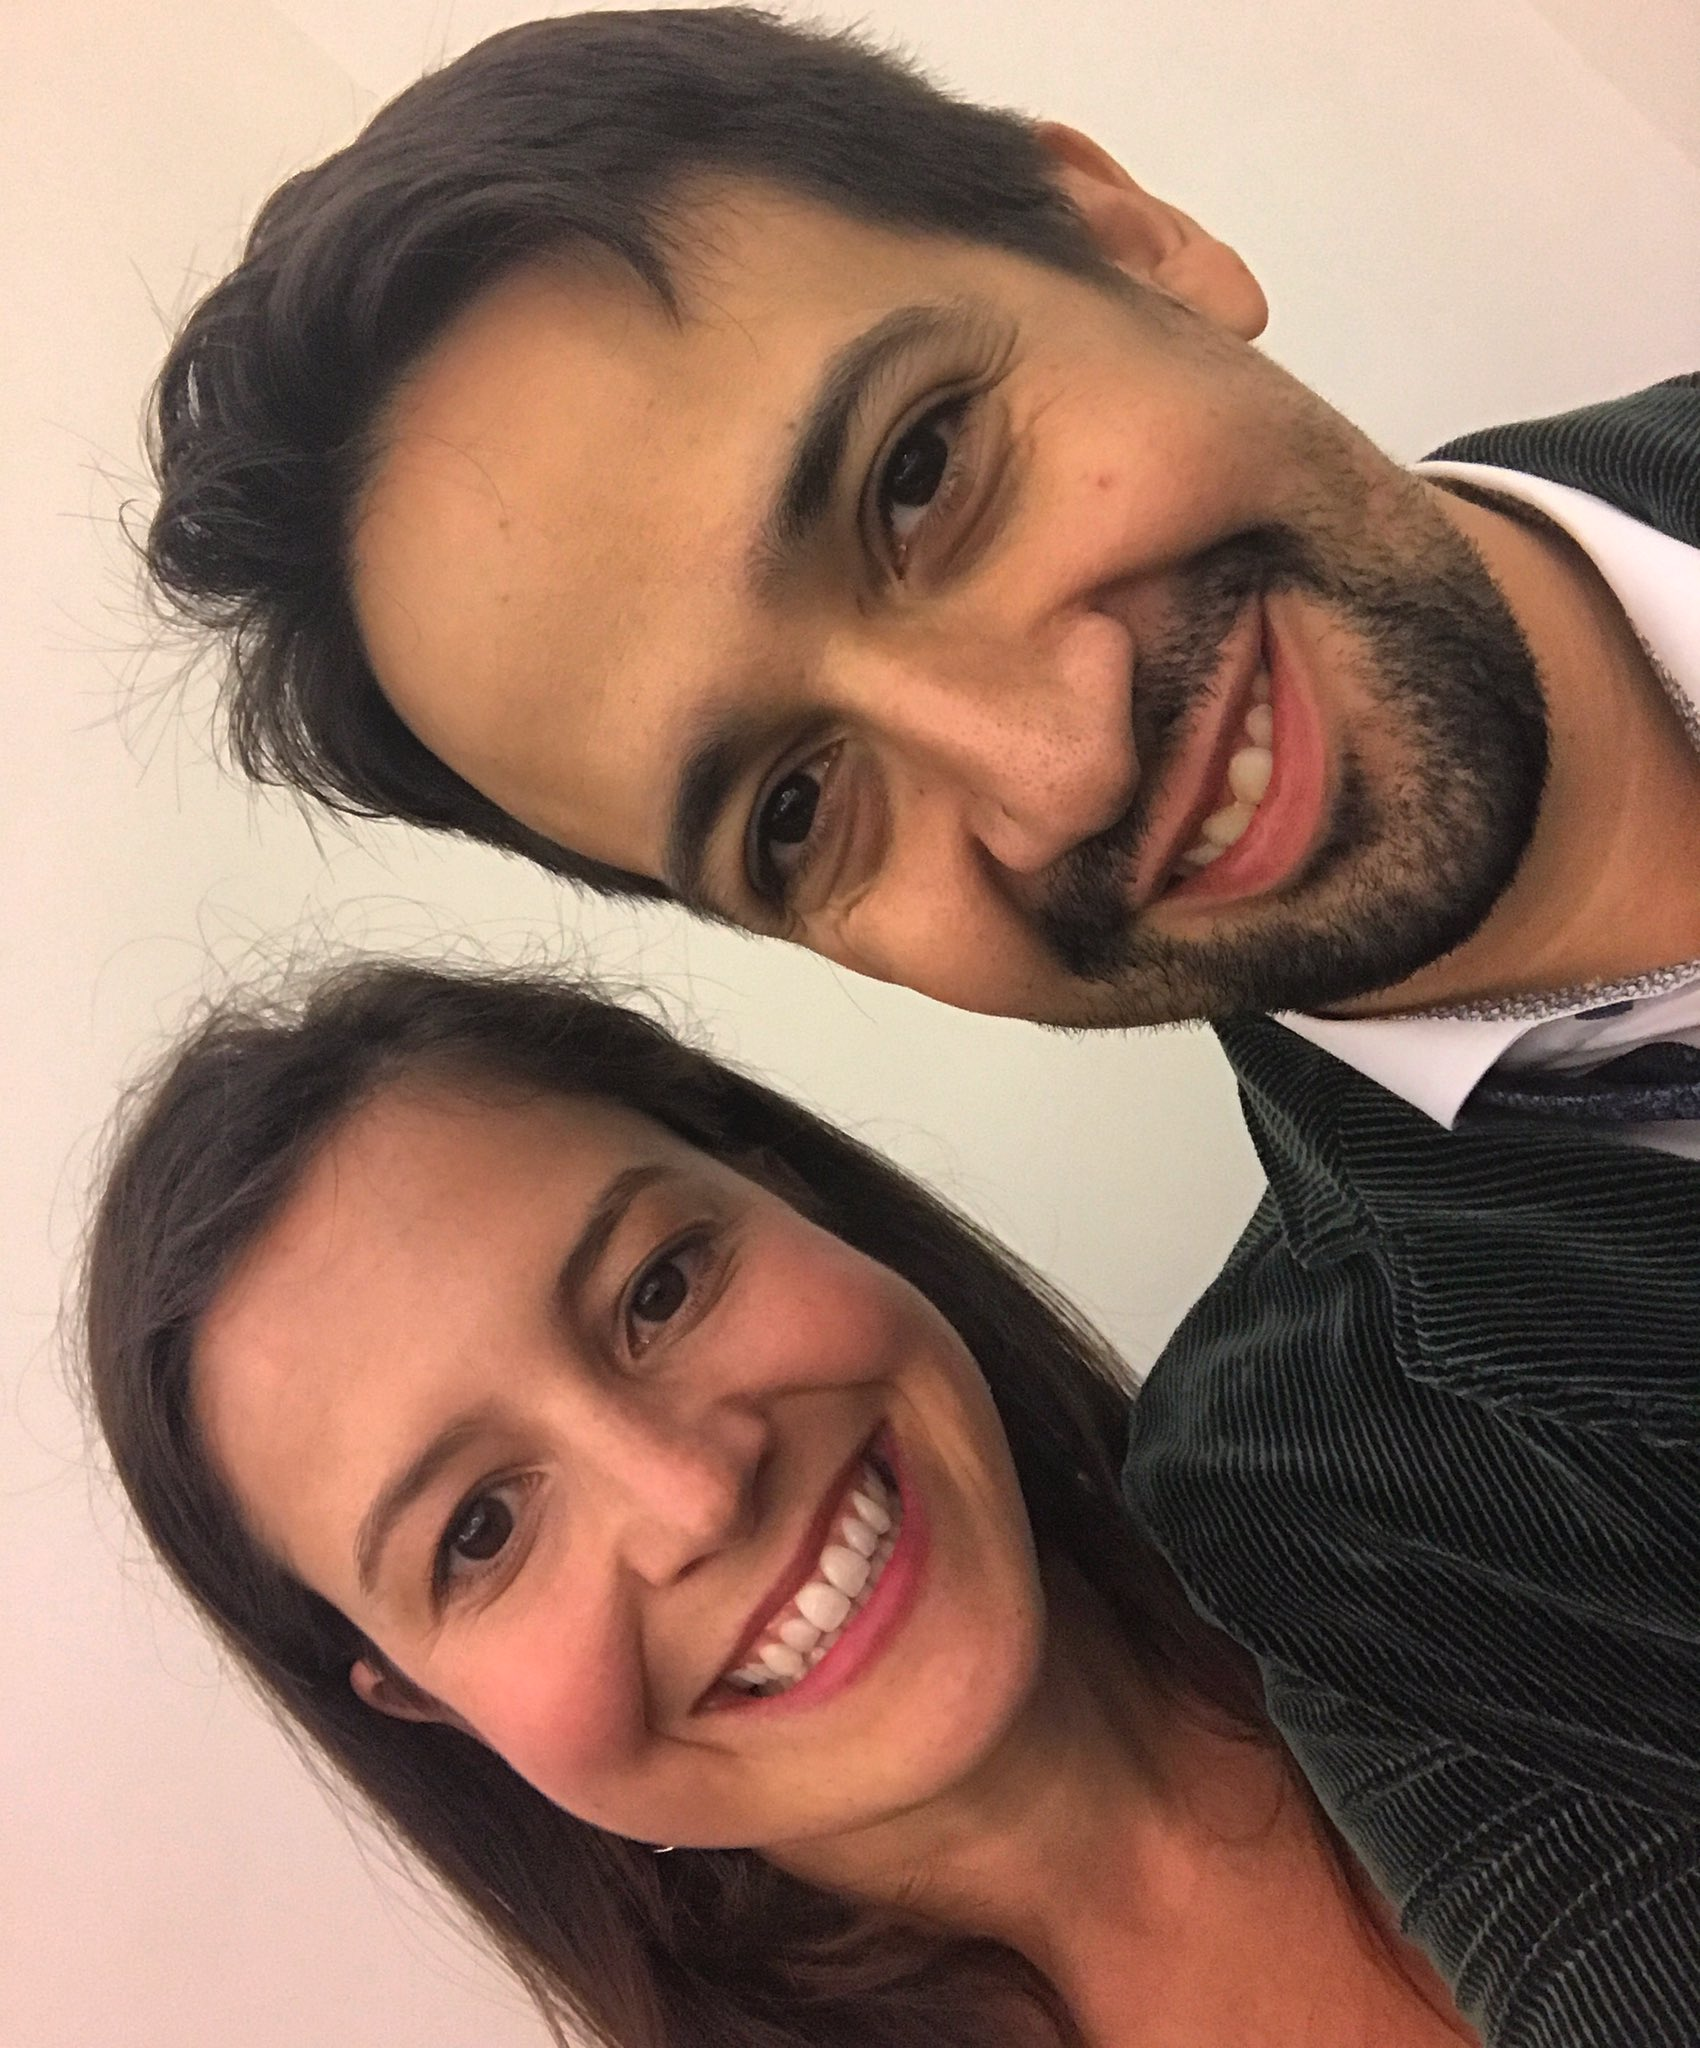 Elise stefanik on twitter an absolute joy today to meet lin_manuel to show bipartisan support for nehgov i am bursting with happiness